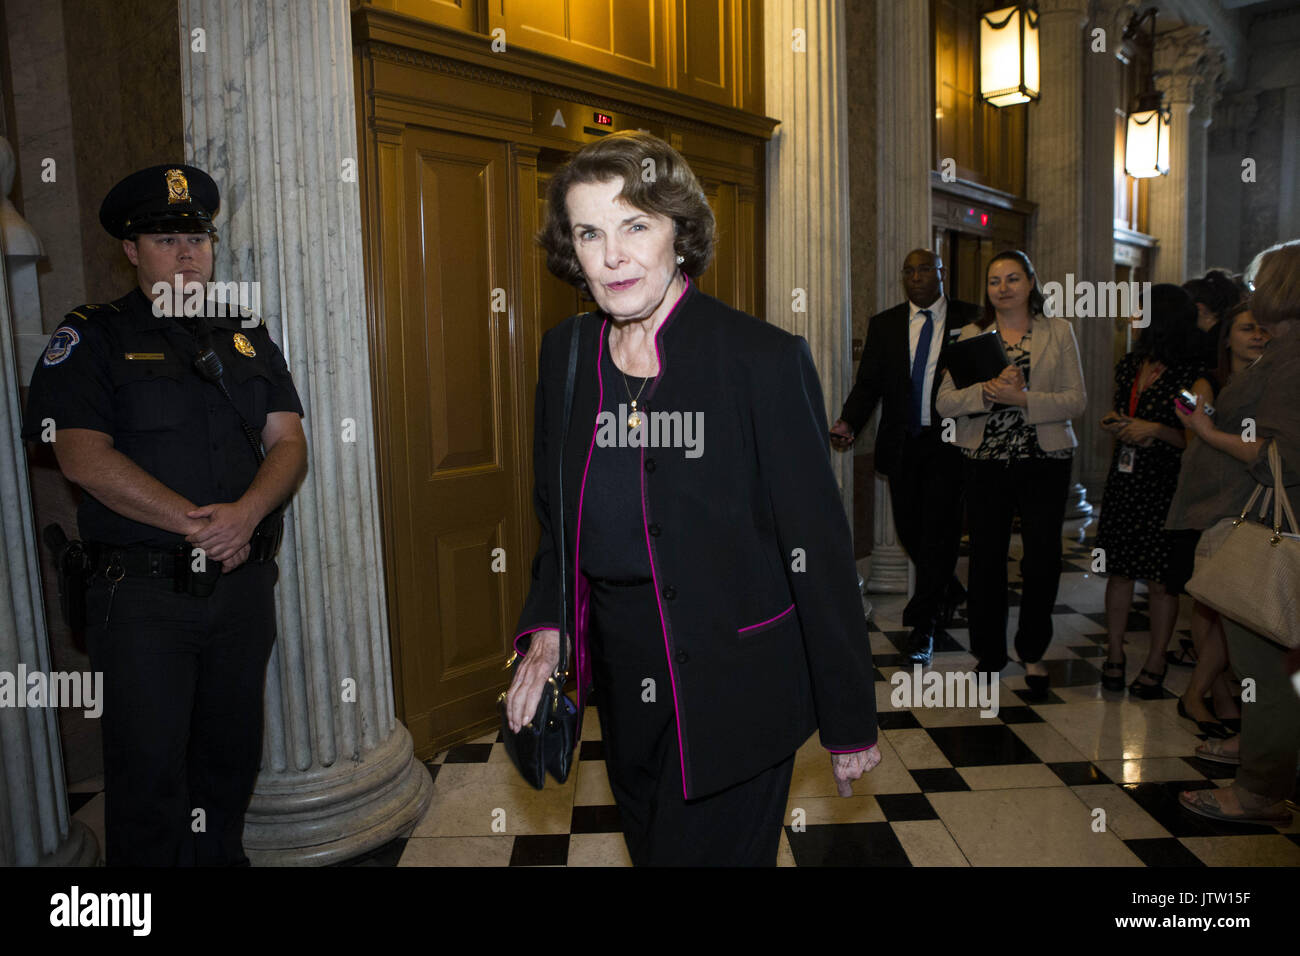 July 26, 2017 - Washington, District Of Columbia, USA - Sen. DIANNE FEINSTEIN (D-CA) walks to the Senate floor prior - Stock Image